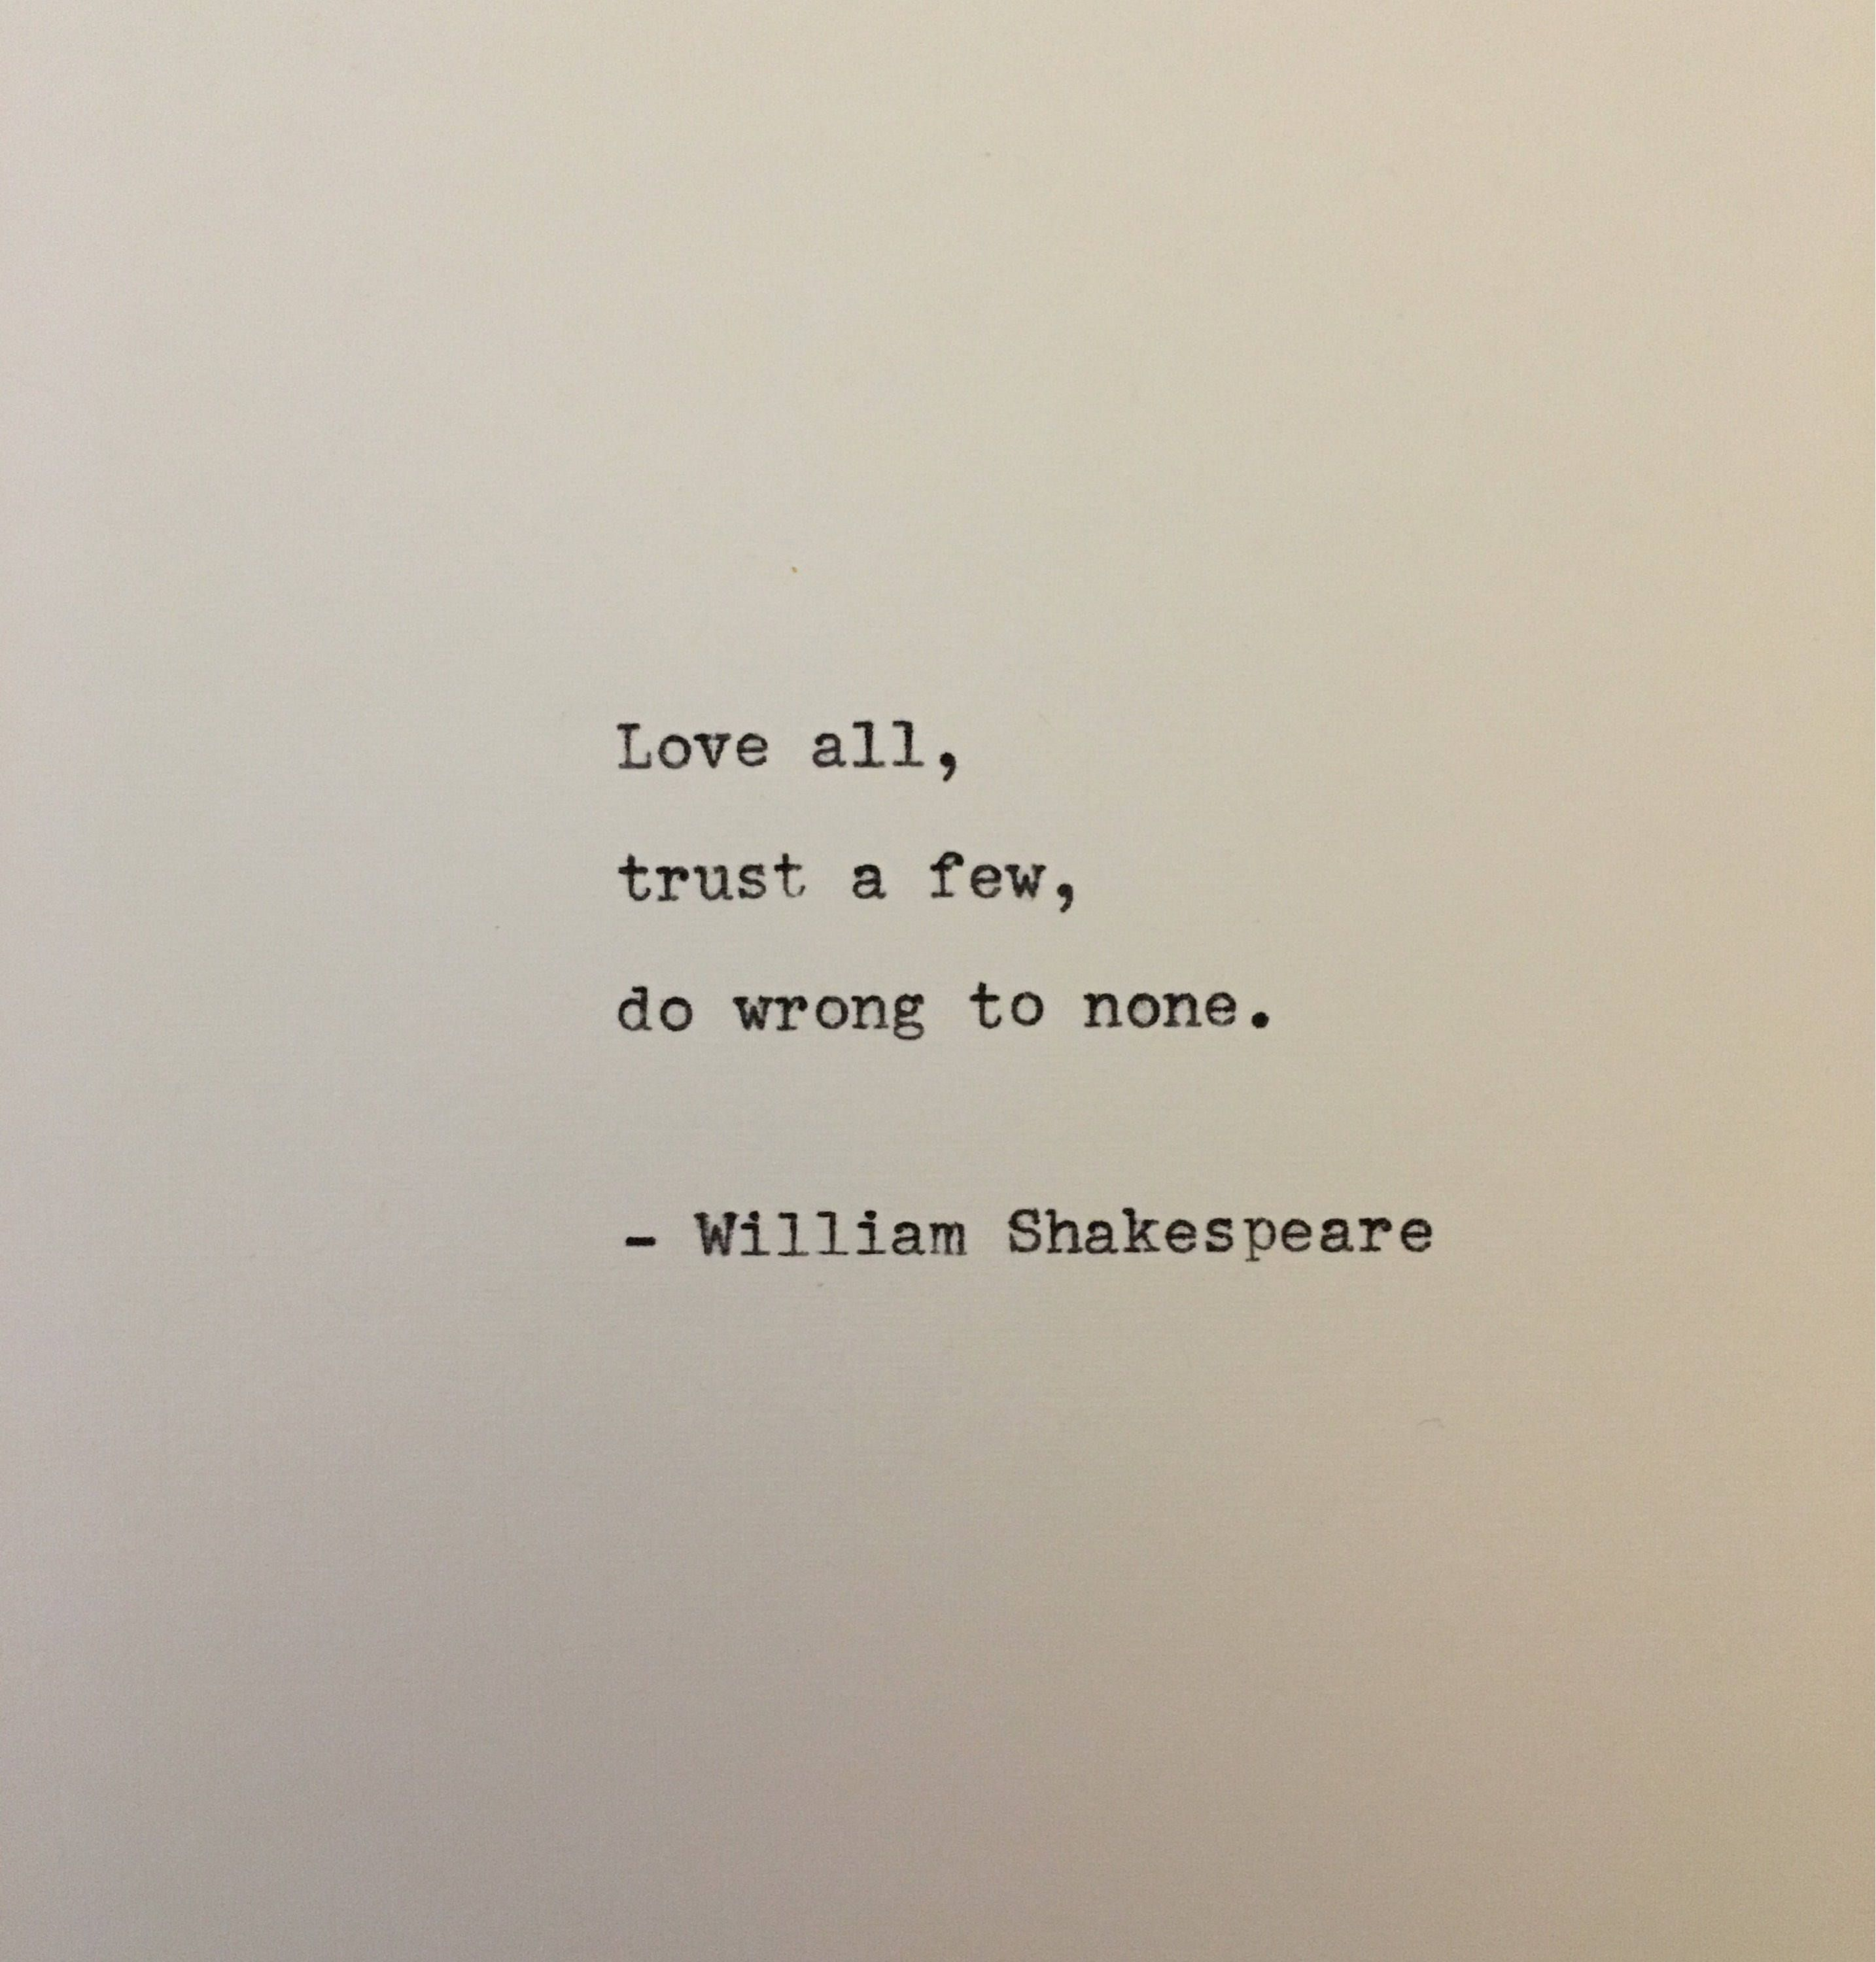 Pin On Ultimate Handmade Typewriter Gift For Him And Her No Fear Shakespeare Hamlet Act 1 Scene 3